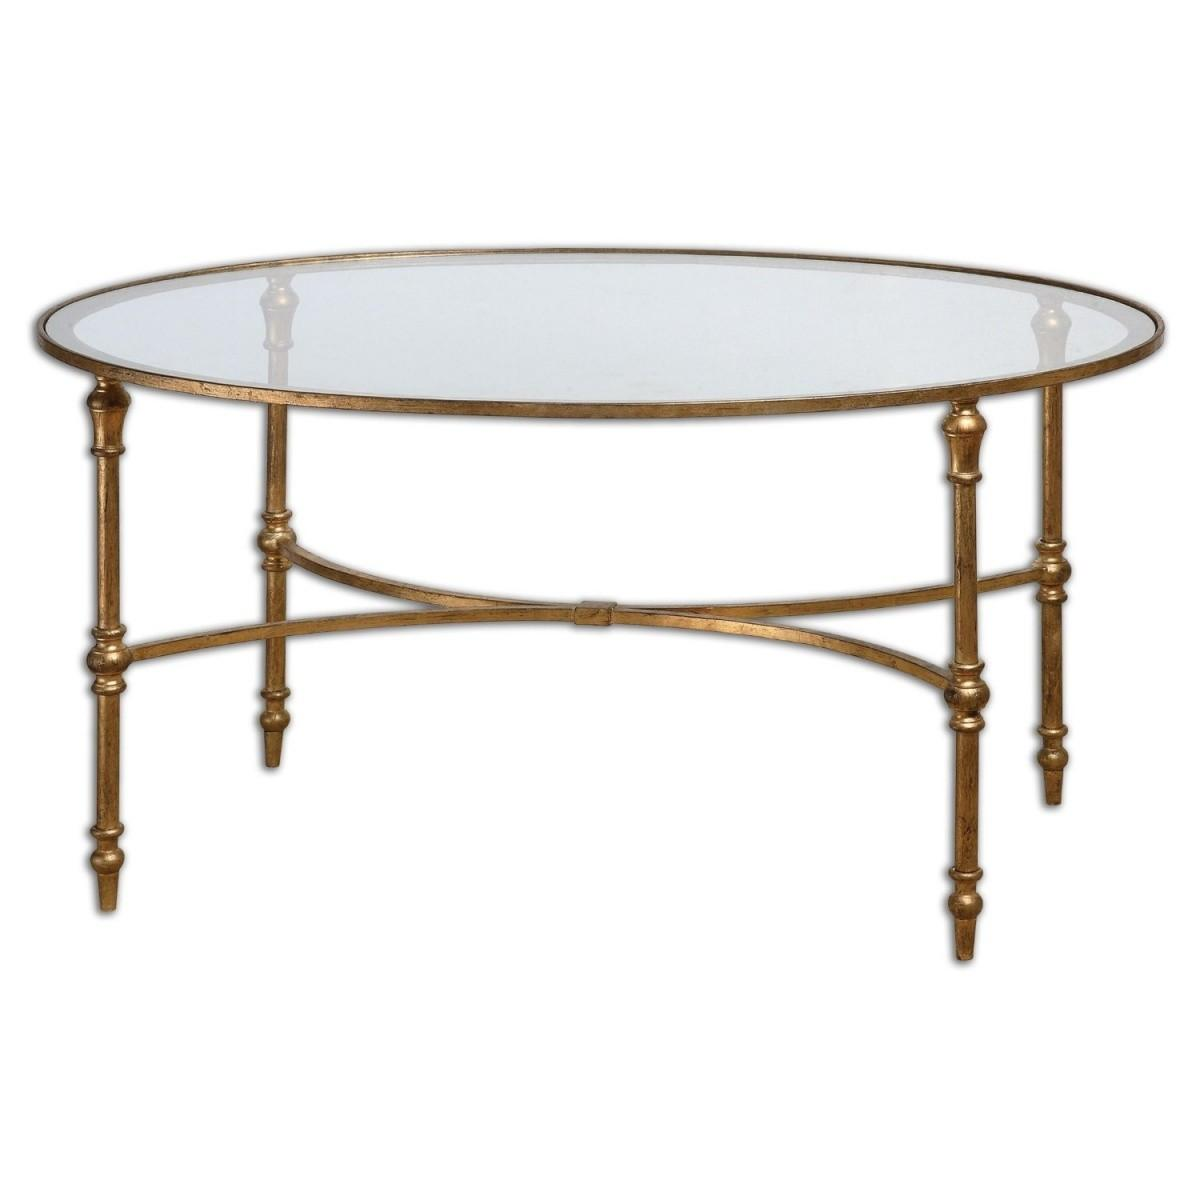 Top Splendid Round Gold Coffee Table Coffe